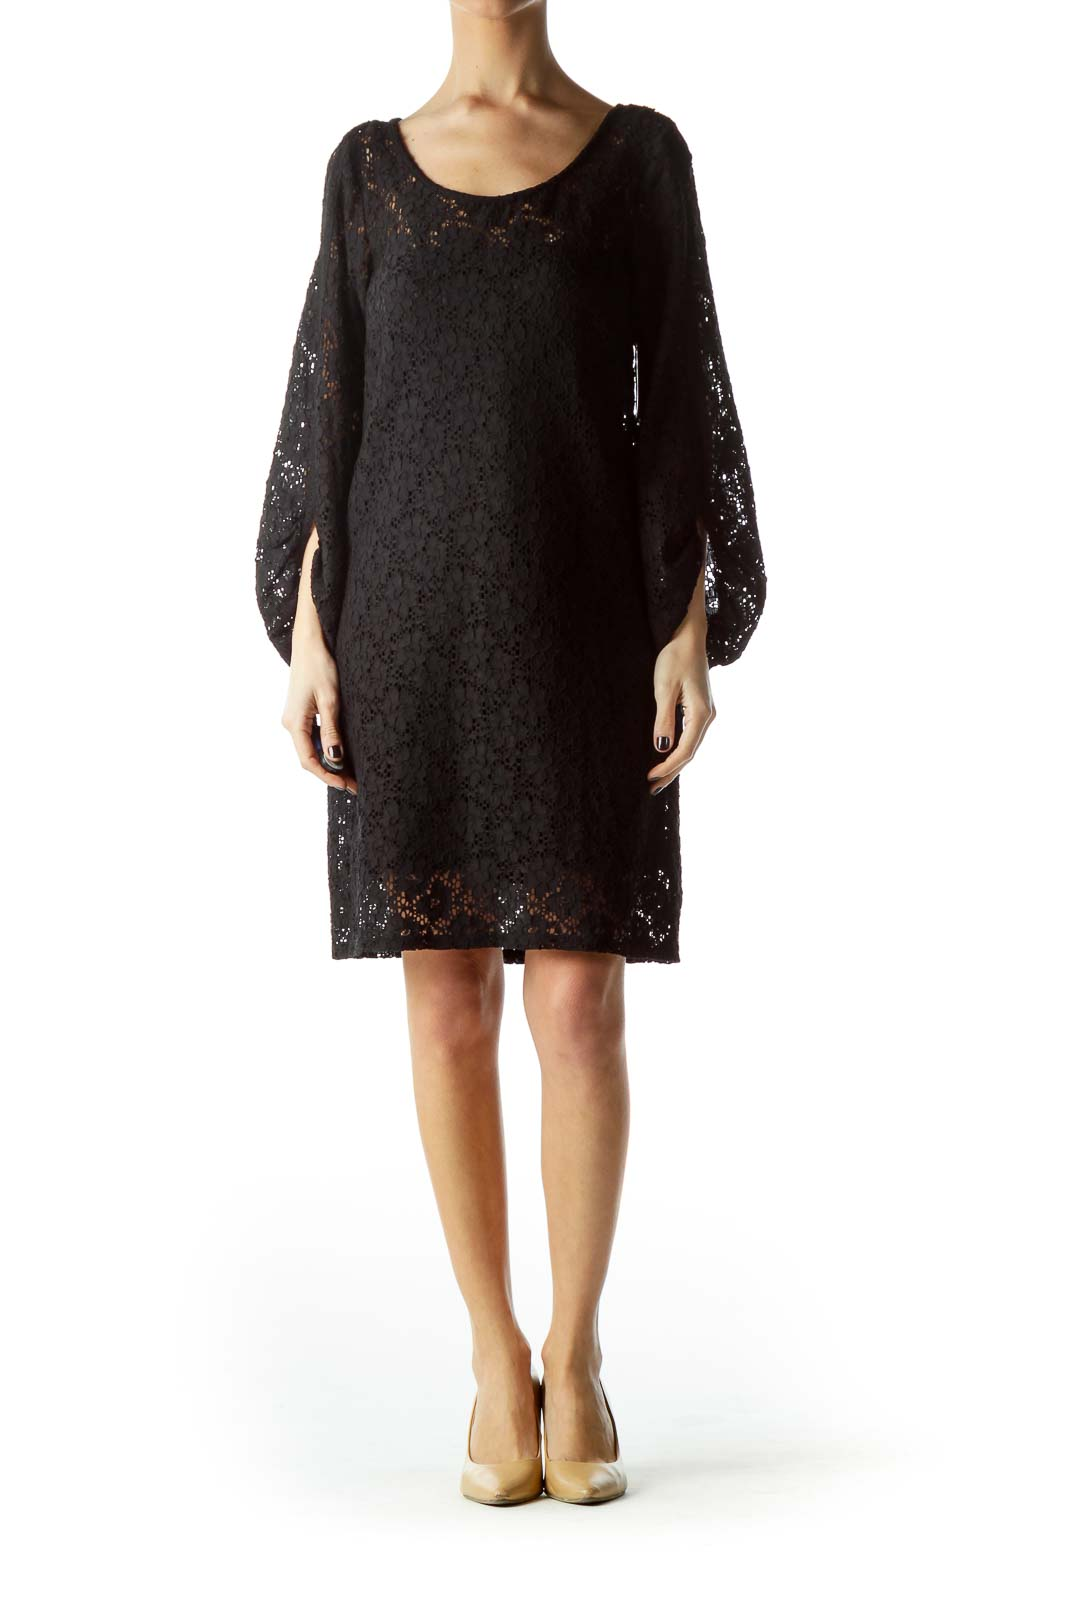 Black Knit Long Sleeve Dress with Slip